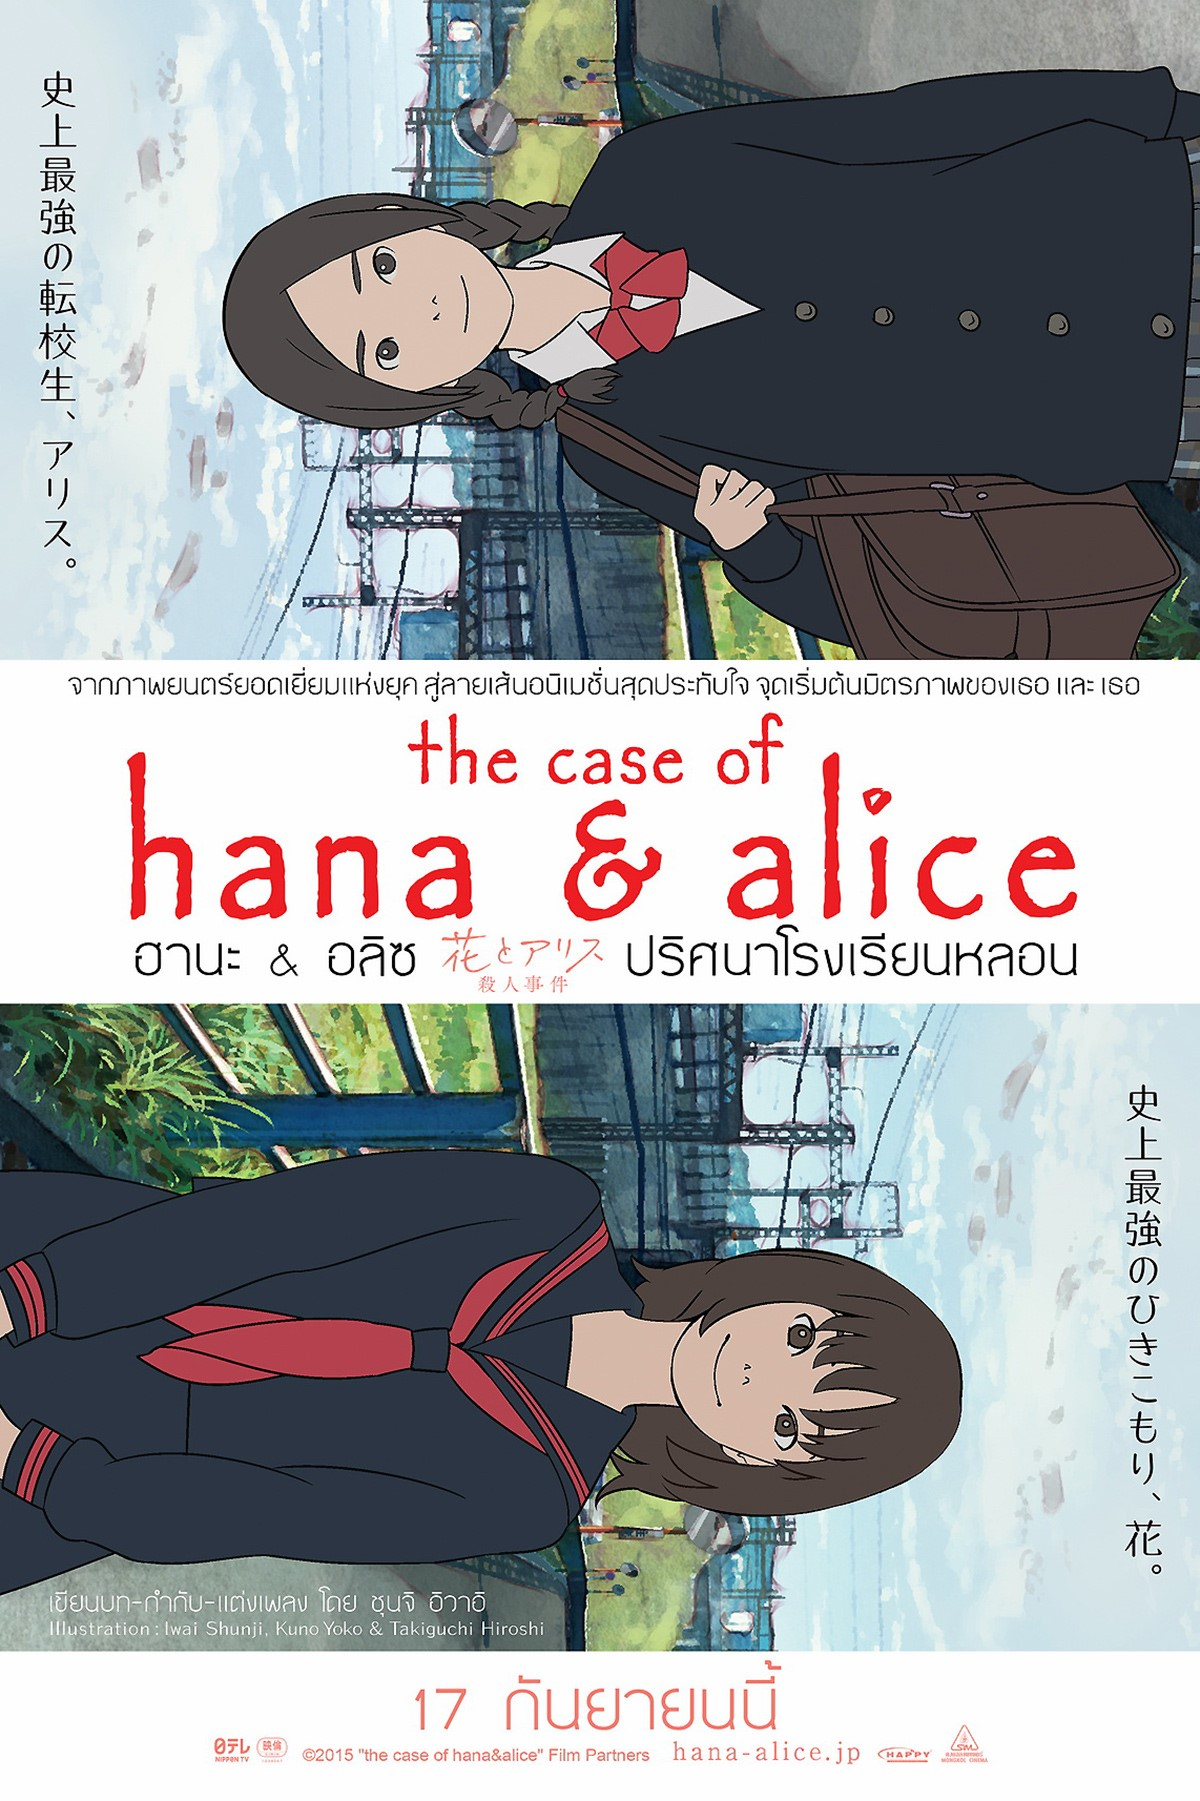 The Case of Hana & Alice